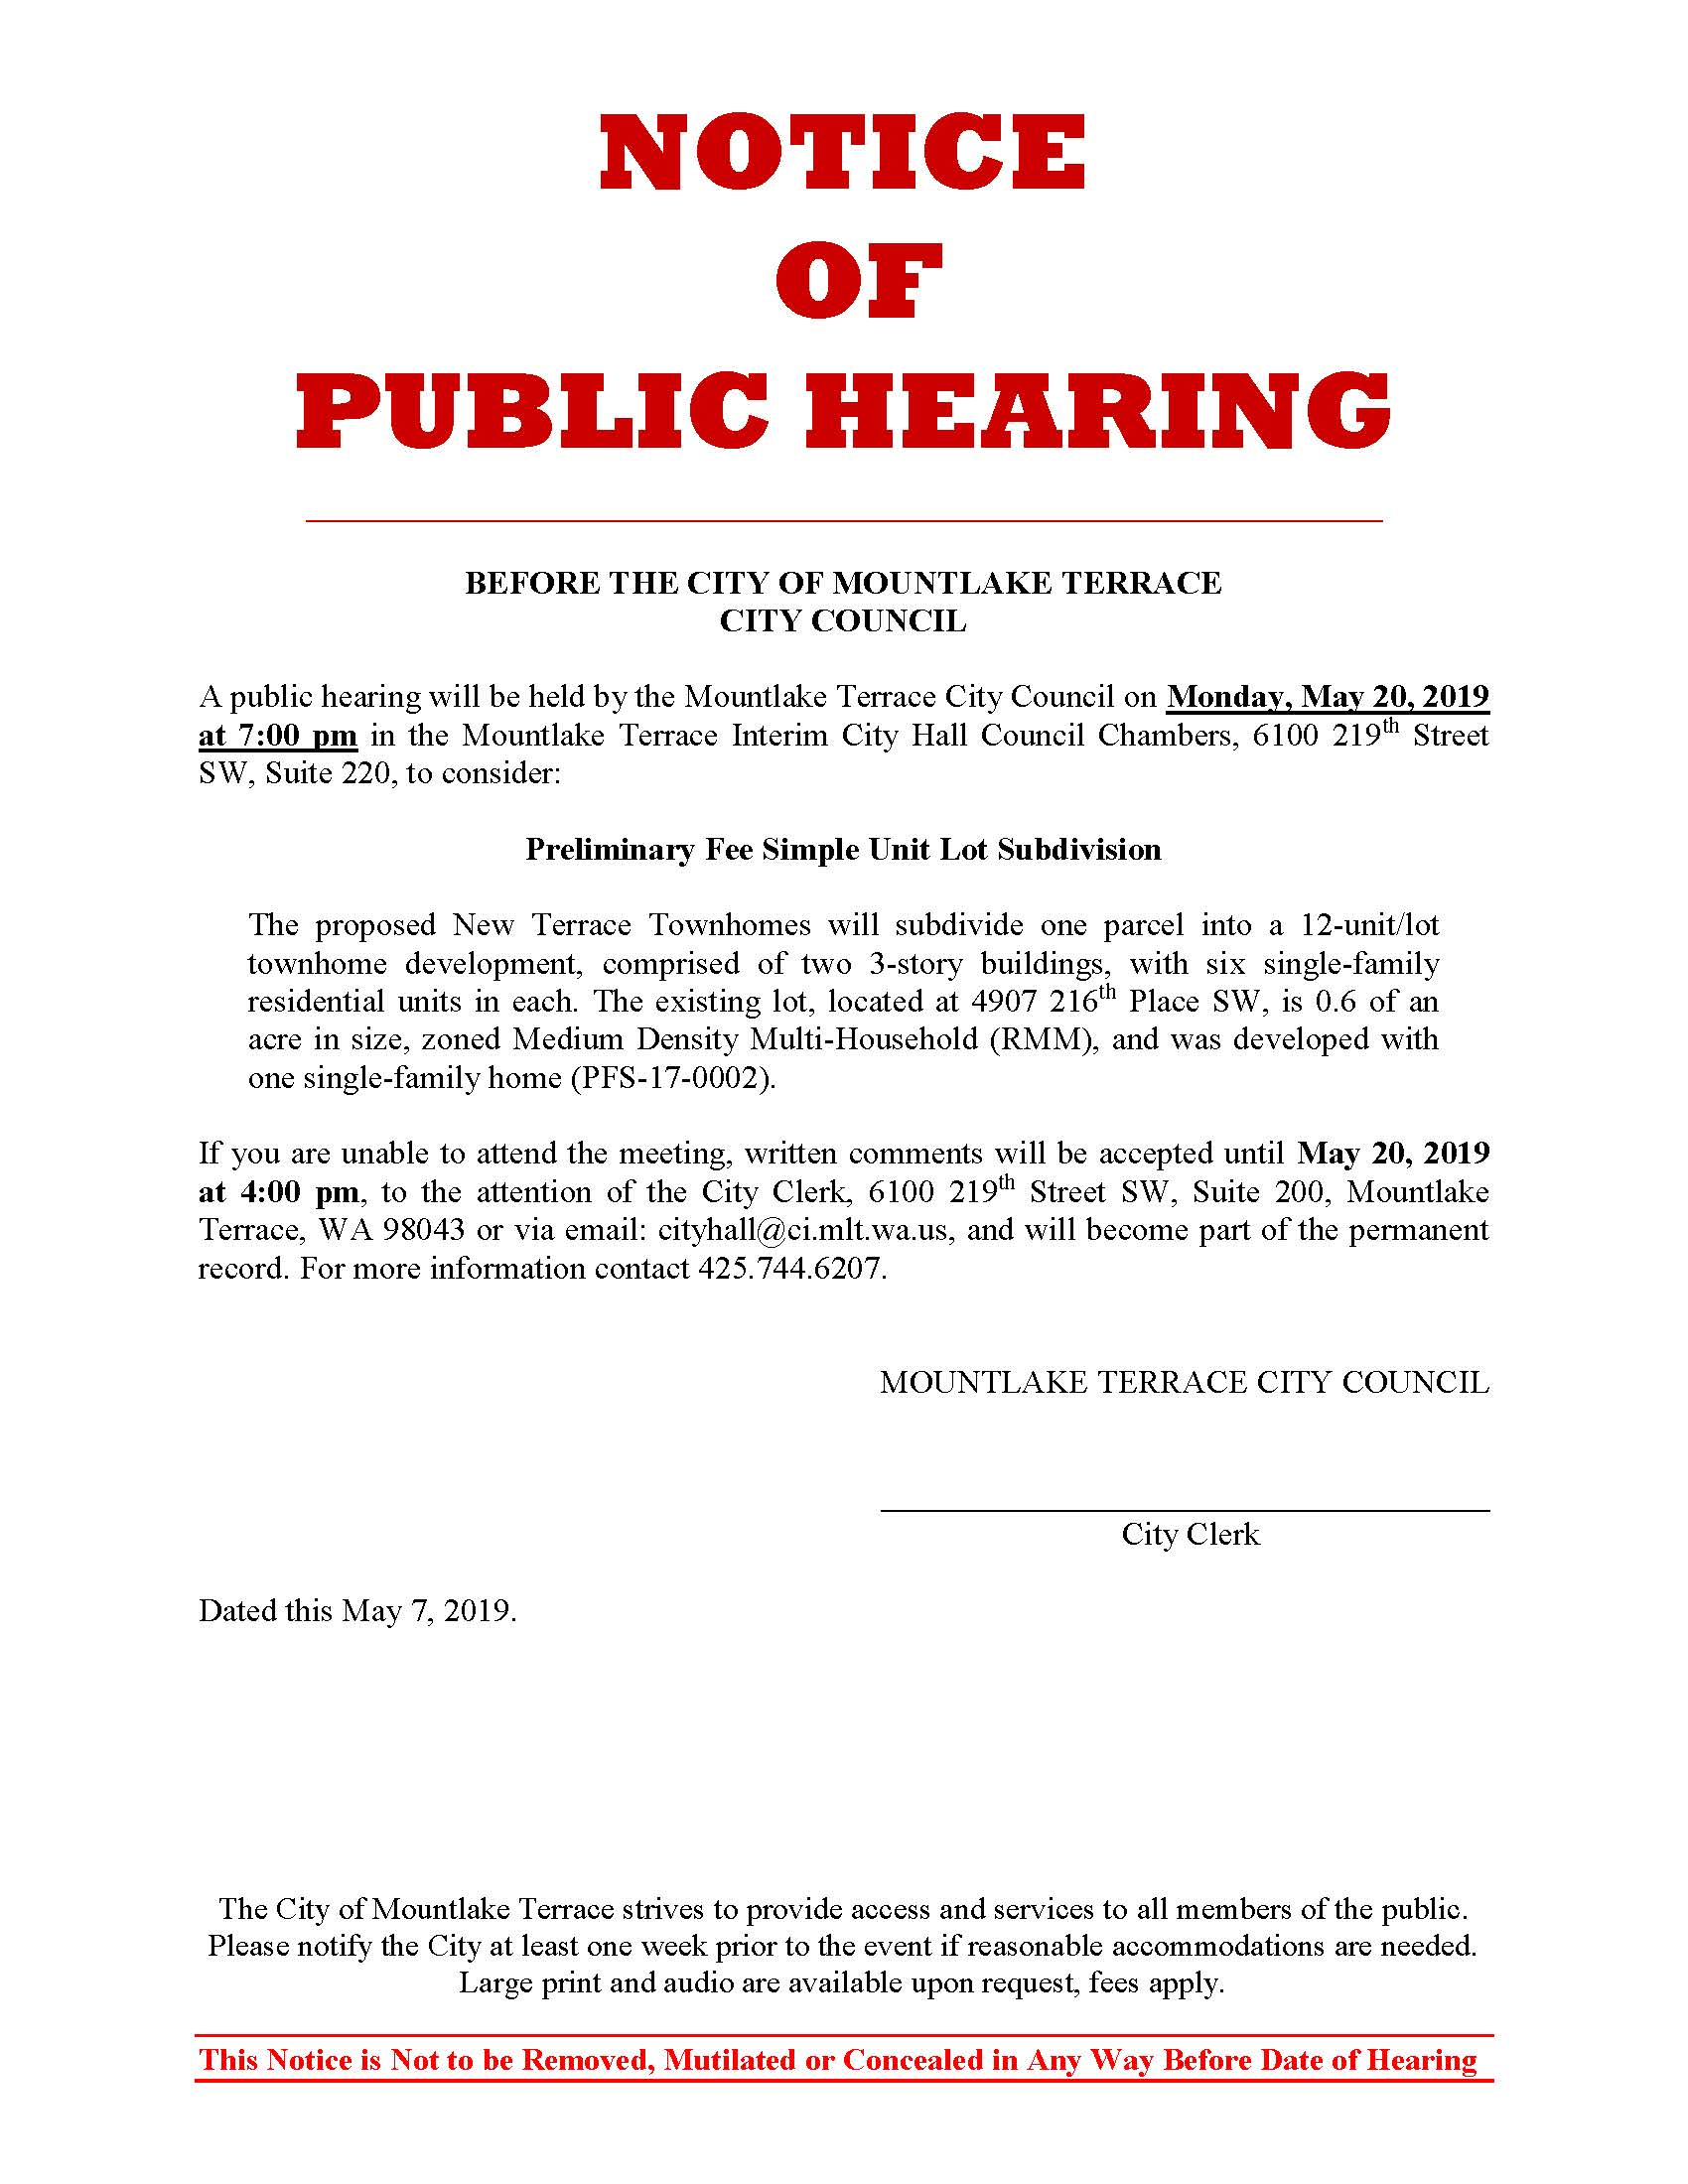 Public Hearing Template